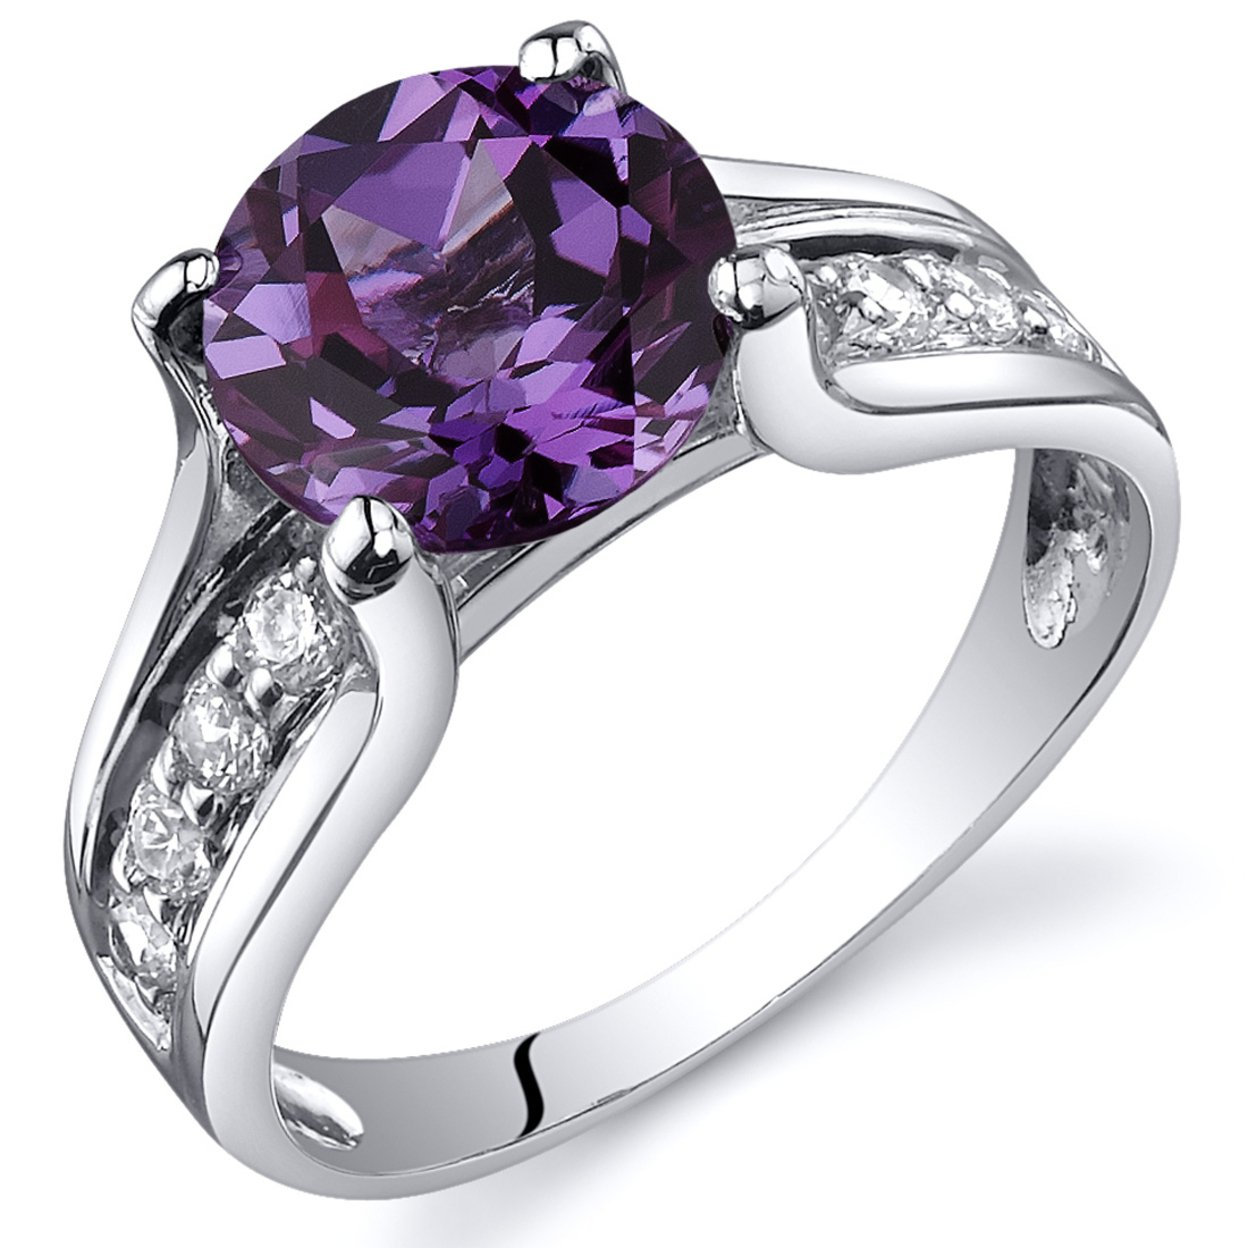 Oravo 2.75 Ct Simulated Alexandrite Solitaire Ring In Rhodium-plated Sterling Silver, Sizes 5-9